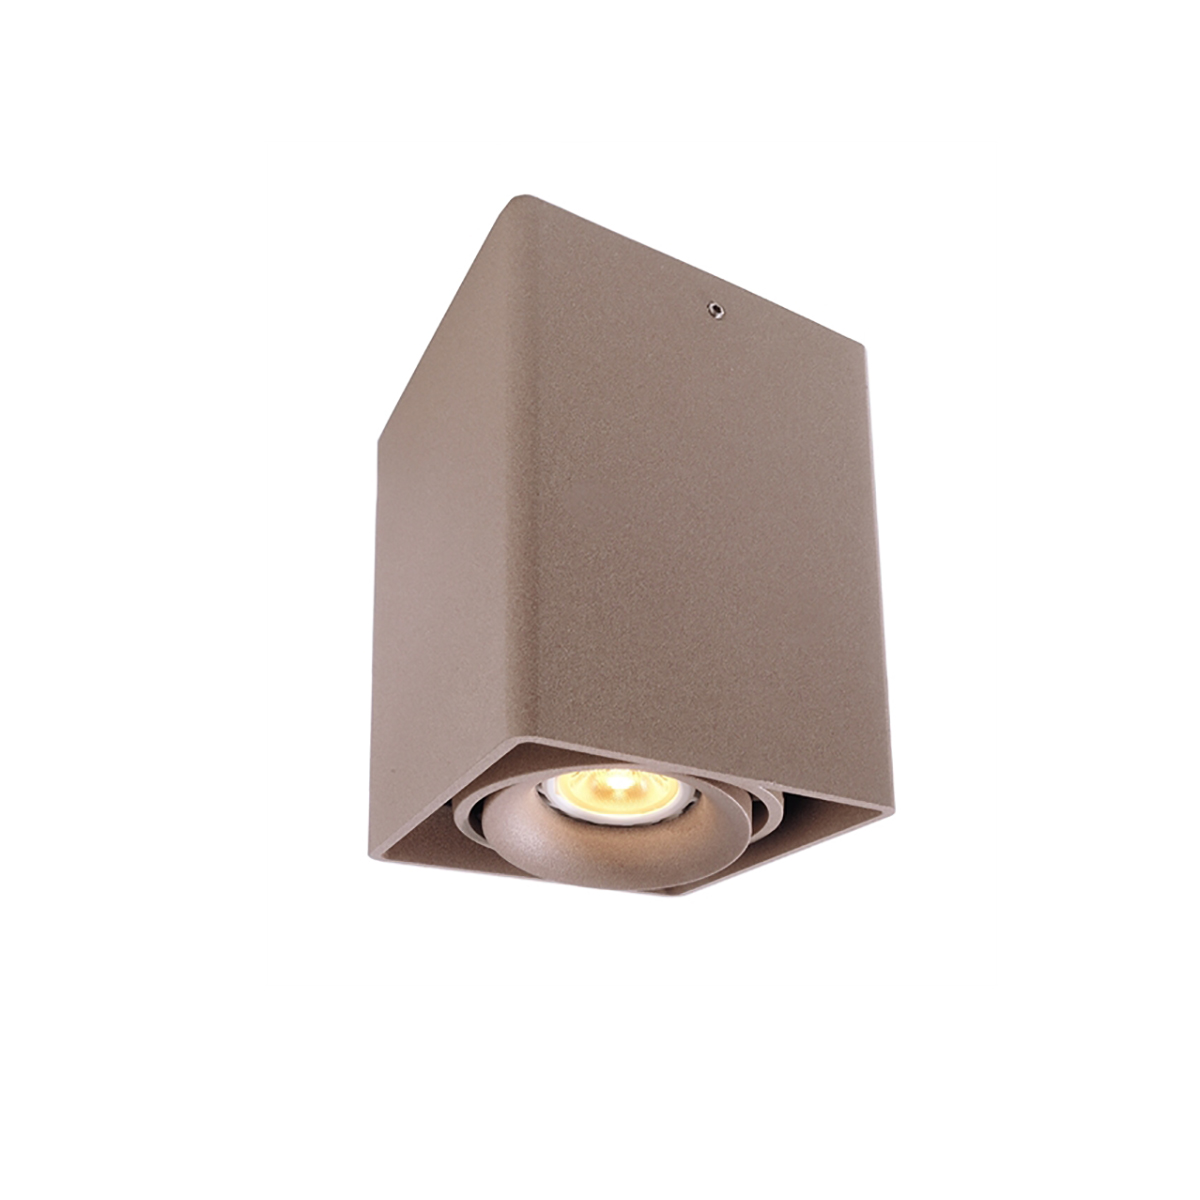 Applique a fissaggio soffitto spot 38 gradi 5w led gu10 230v faretto orientabile